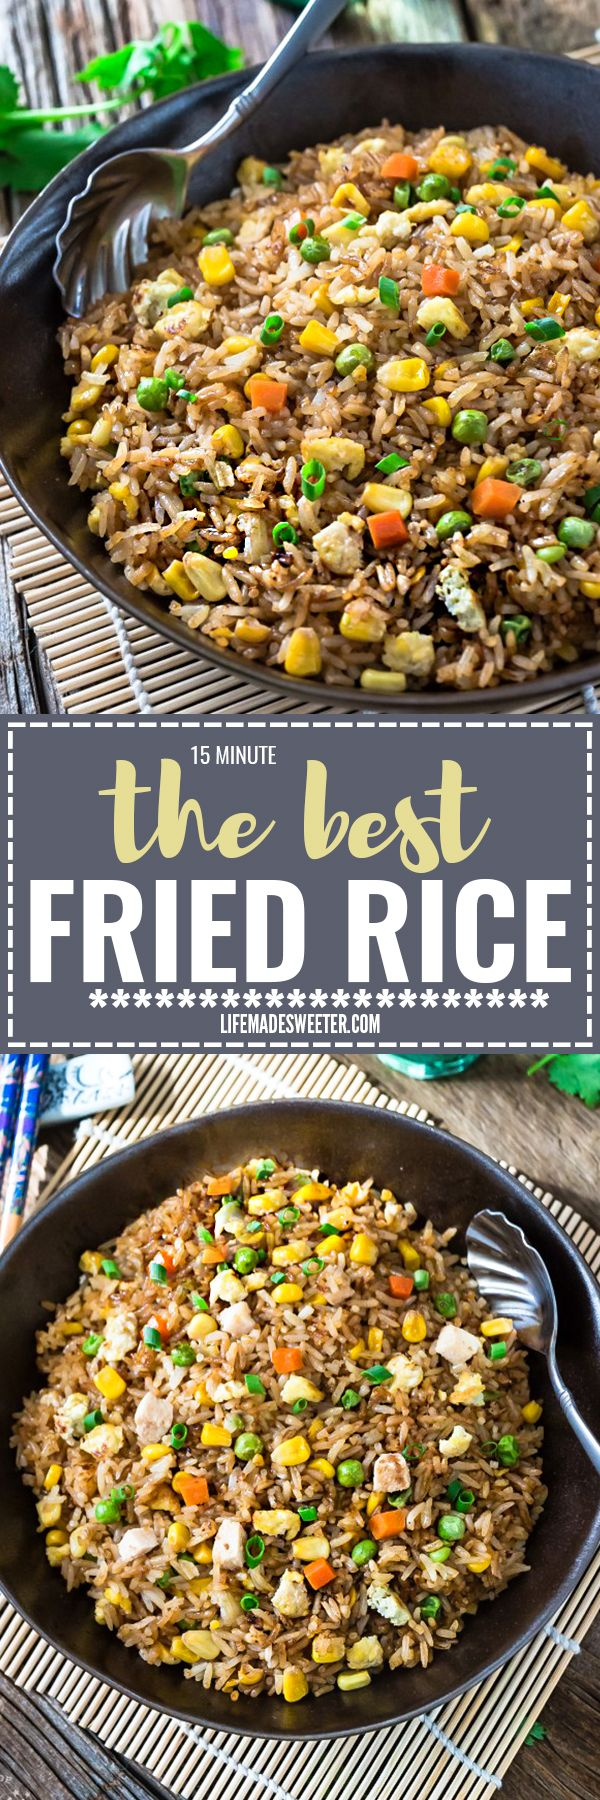 Absolutely the BEST Chinese Fried Rice - the perfect easy weeknight dish. With the most authentic flavors! My father was the head chef at a top Hong Kong Chinese restaurant and this was his specialty! So delicious and way better than any takeout!